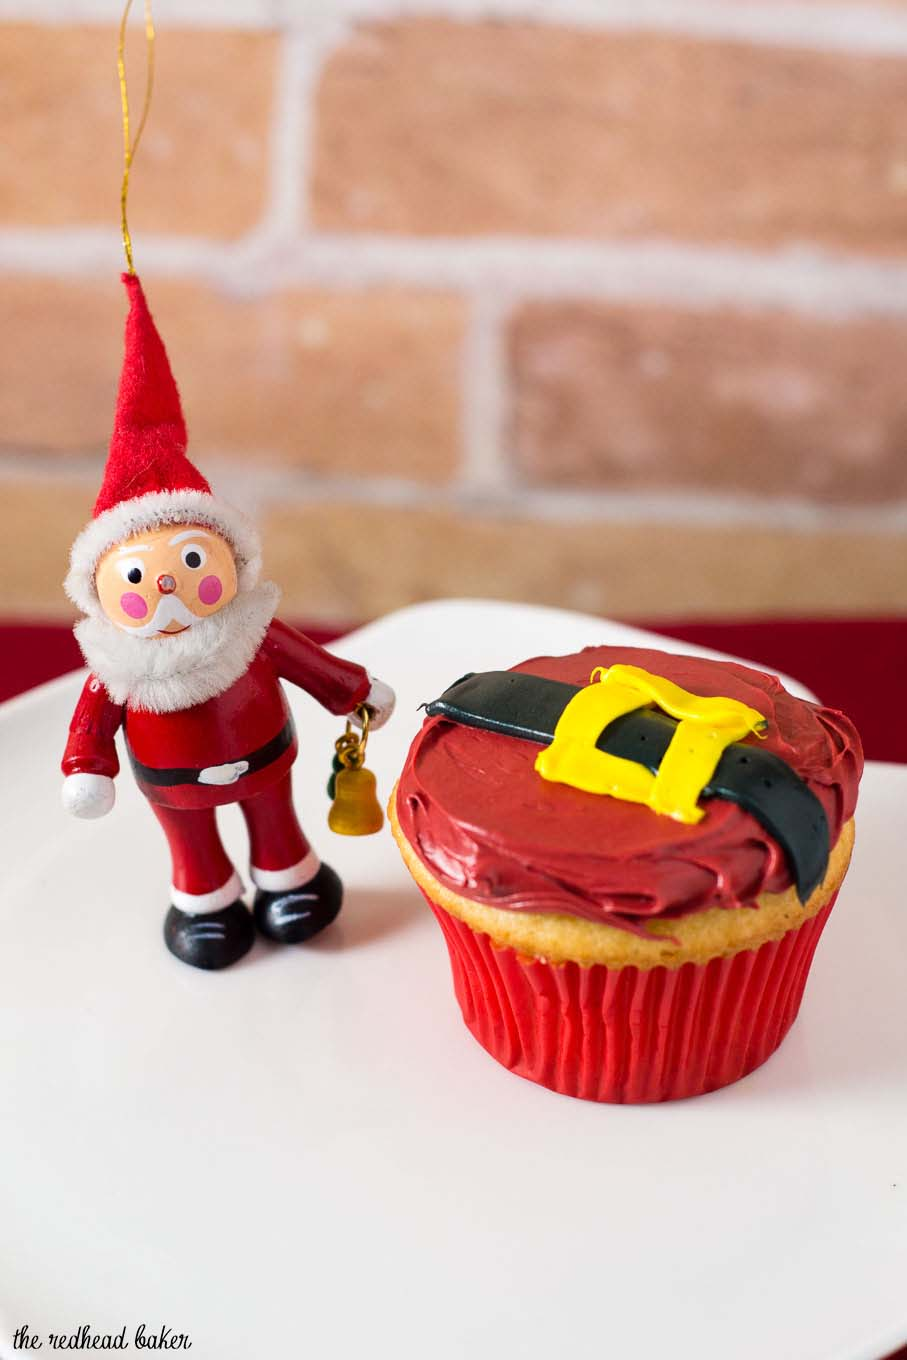 Use this tutorial to learn how to make Santa Claus Cupcakes! These easy cupcakes are a festive addition to any Christmas party or dinner. #NationalCupcakeDay